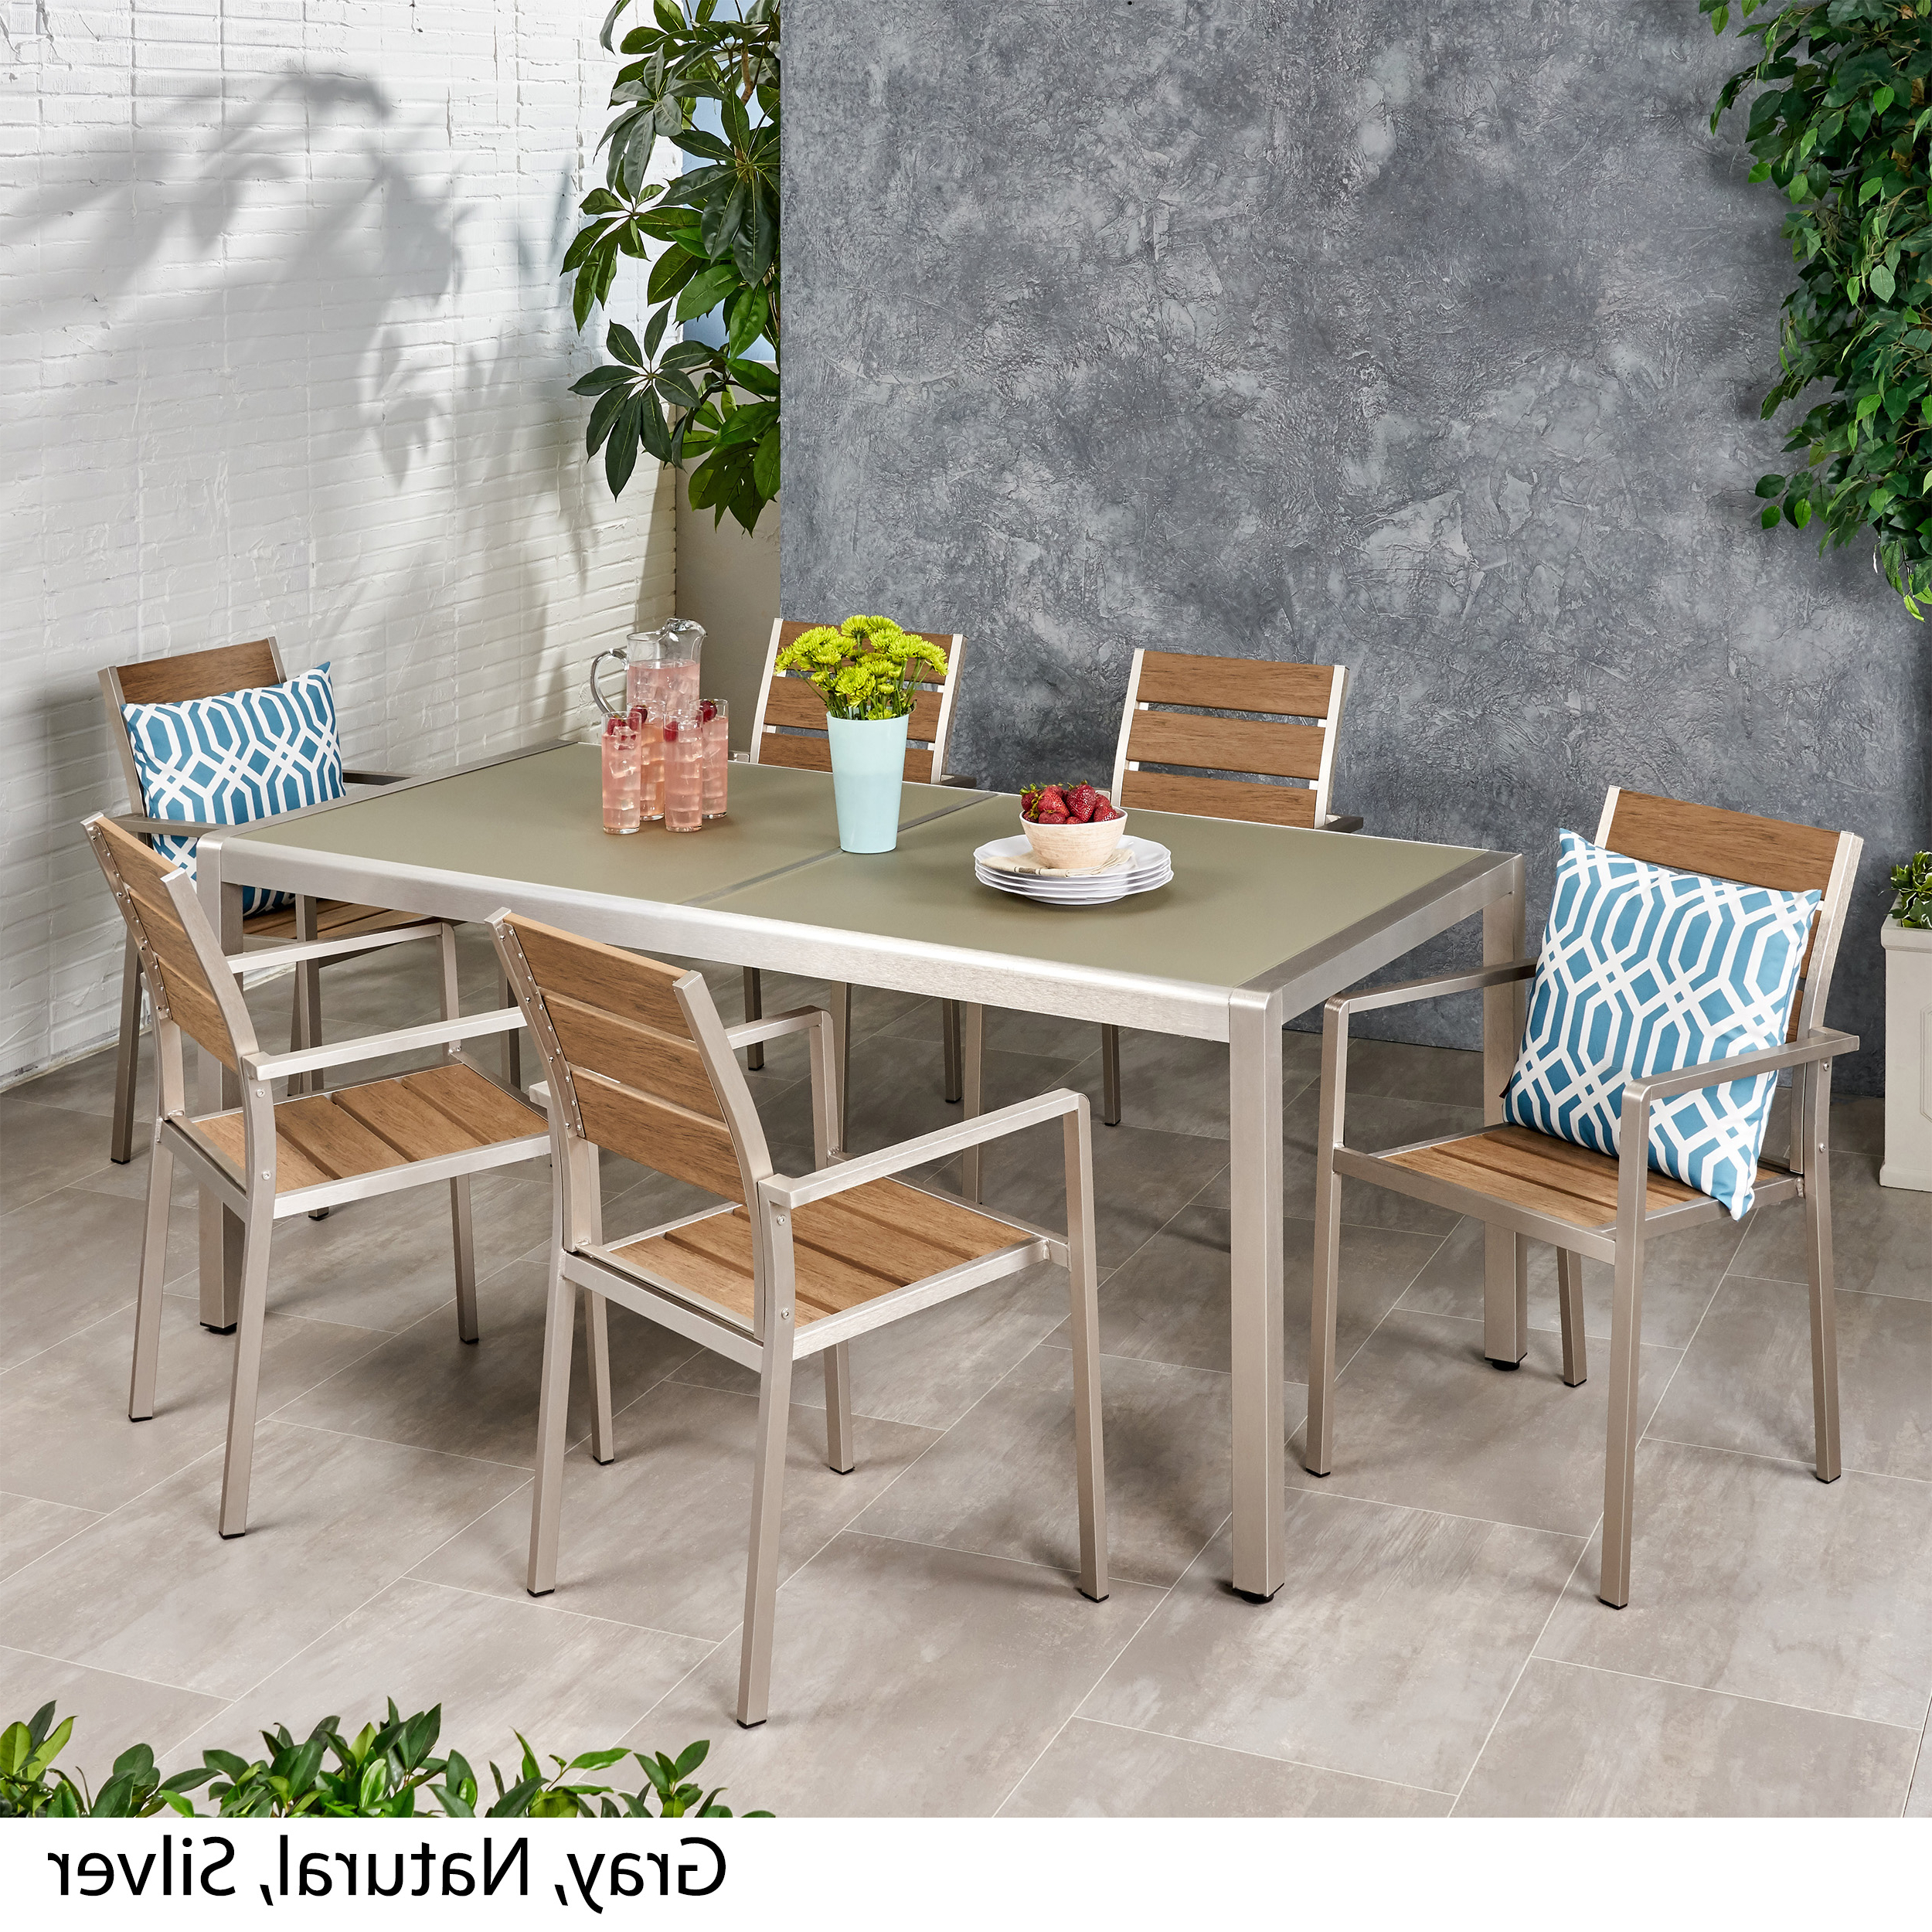 2018 Details About Cherie Outdoor Modern 6 Seater Aluminum Dining Set With Tempered Glass Table Top For Frosted Glass Modern Dining Tables With Grey Finish Metal Tapered Legs (View 21 of 30)